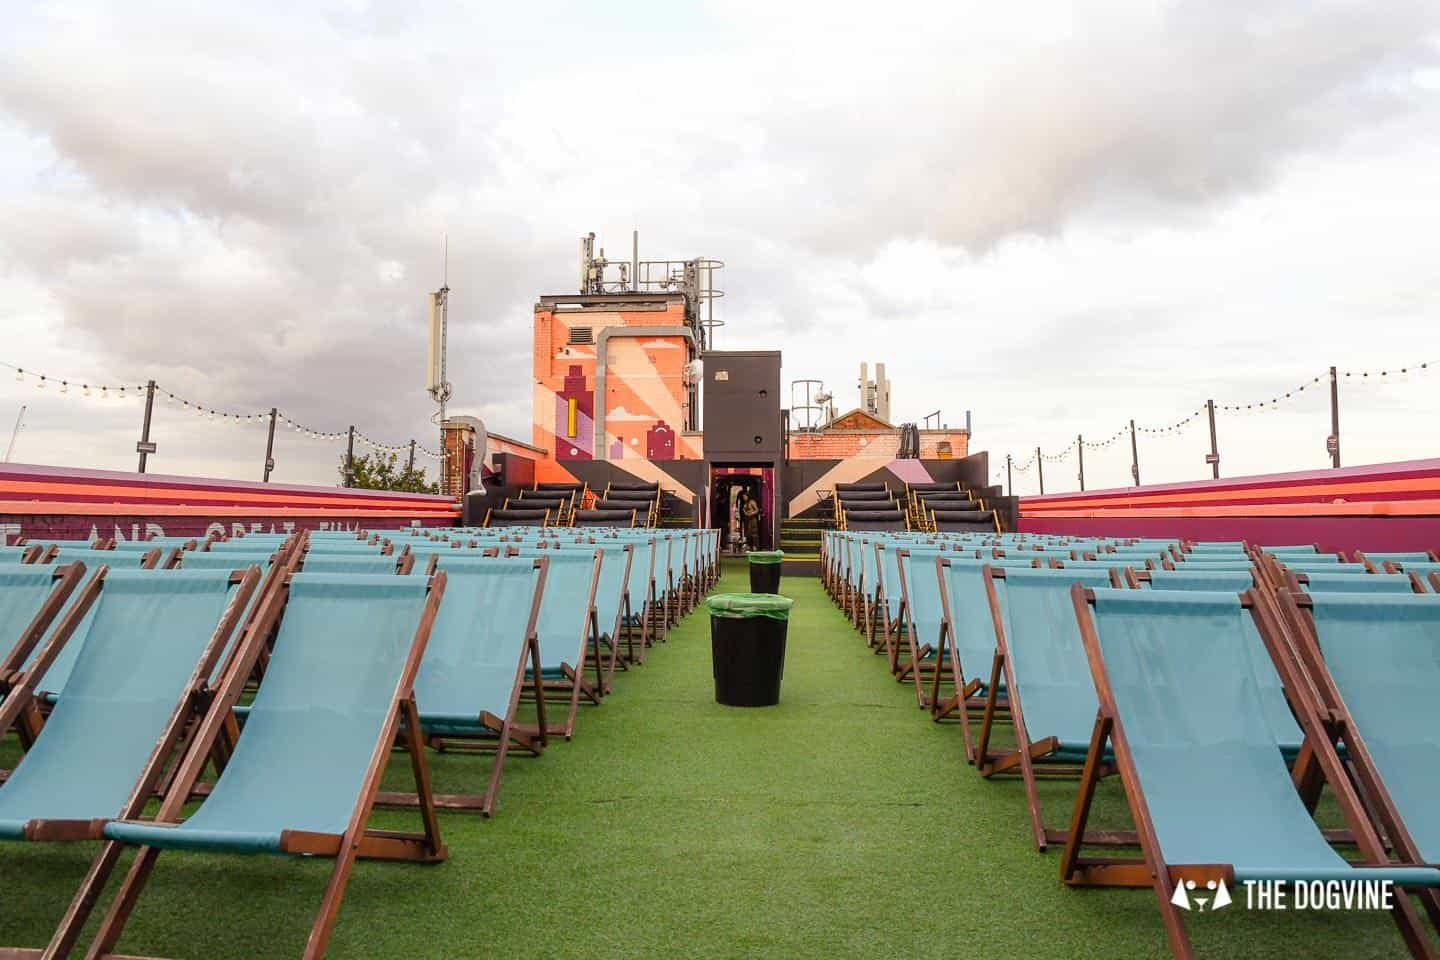 Spectacular Movie Moments at the Dog-friendly Rooftop Film Club 10